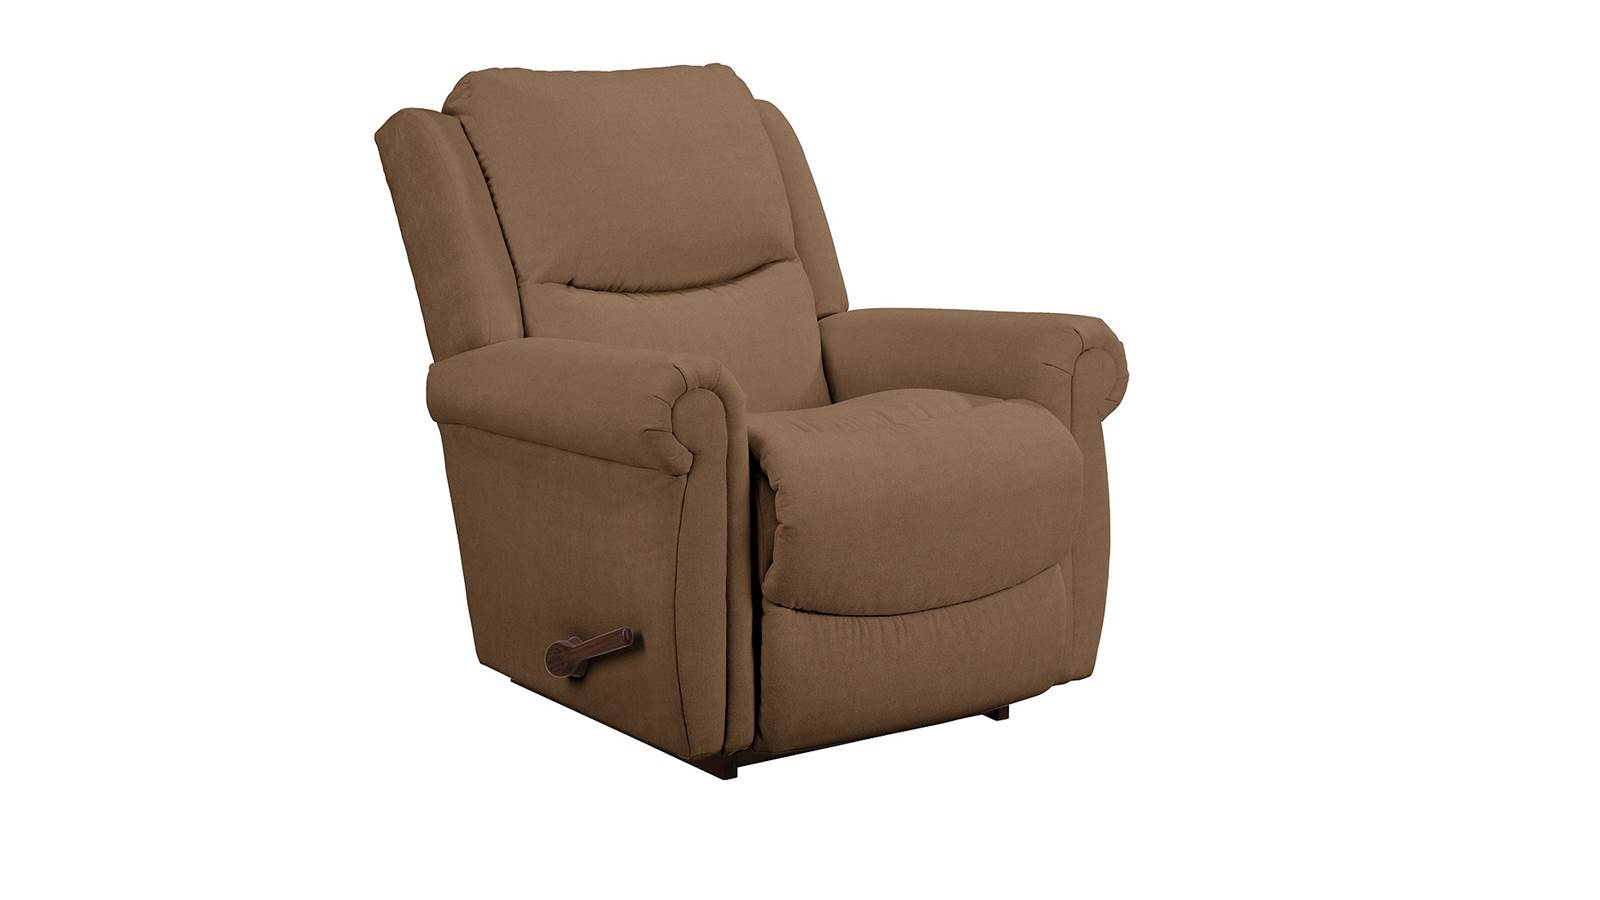 swivel chair harvey norman covers and bows talbot green la z boy dunkan fabric rocker recliner